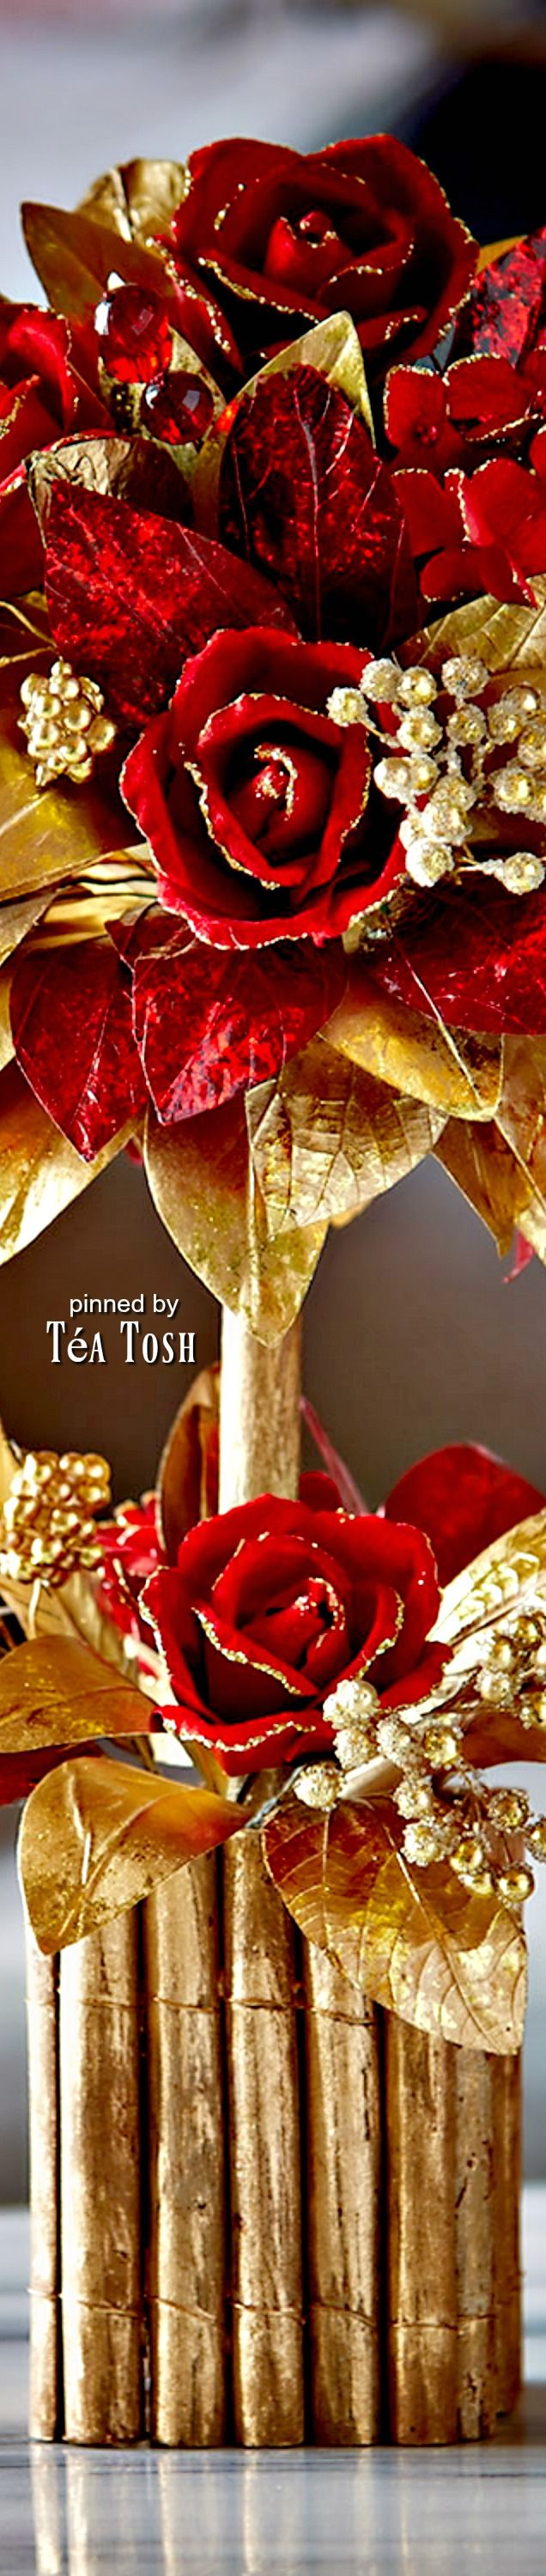 ❇Téa Tosh❇ Tabletop Topiary